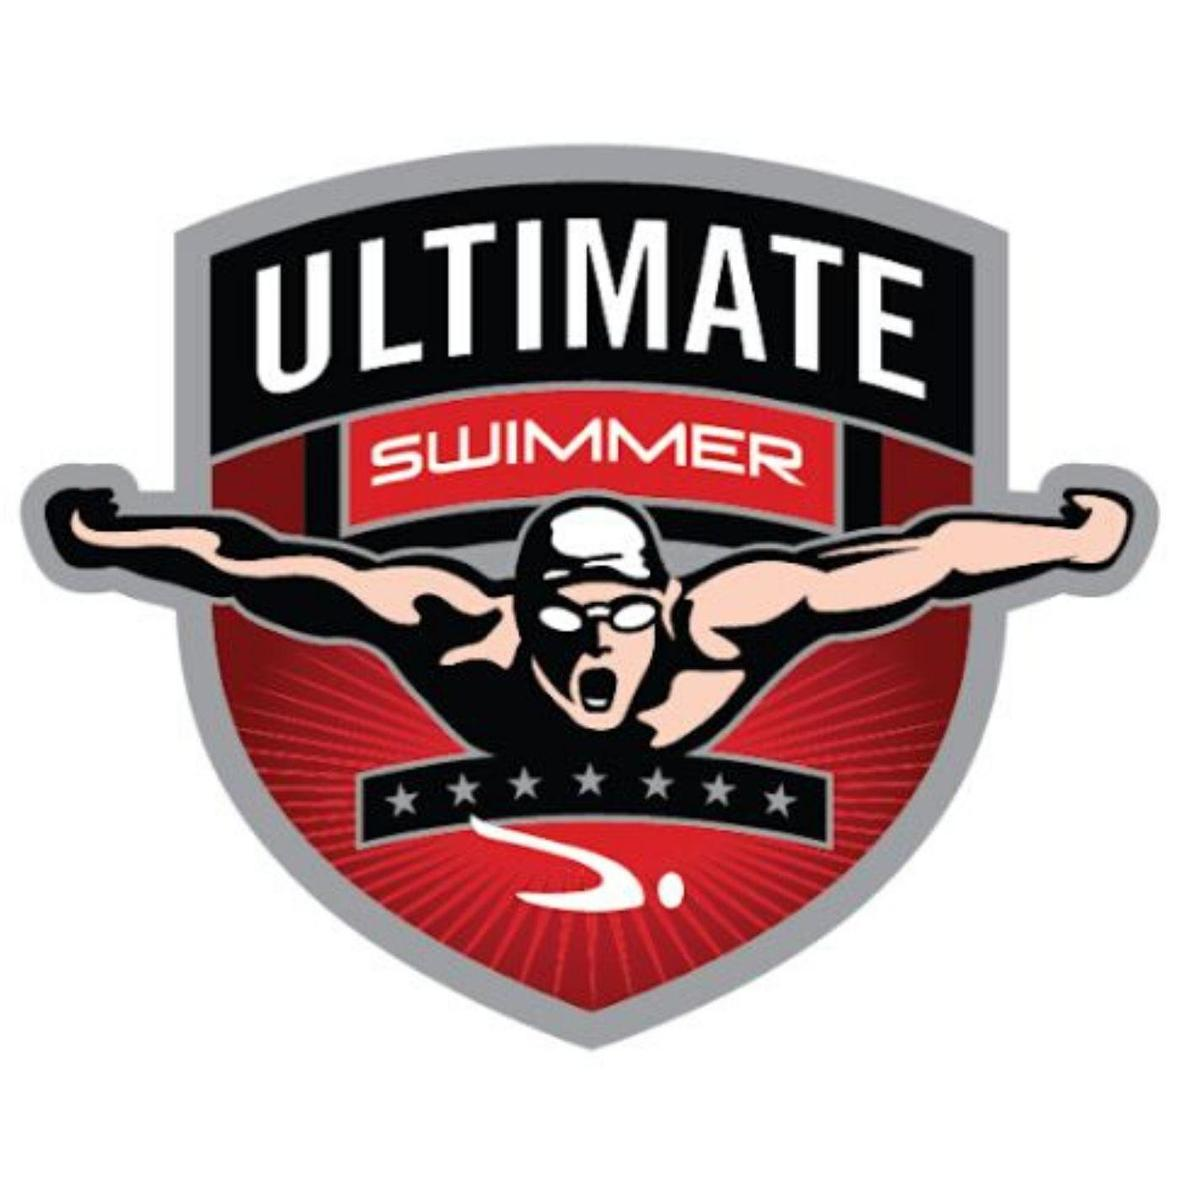 ultimate-swimmer-ultimate-swimmer-F-mVLs9pKTS-x2drZFVs7HC.1400x1400